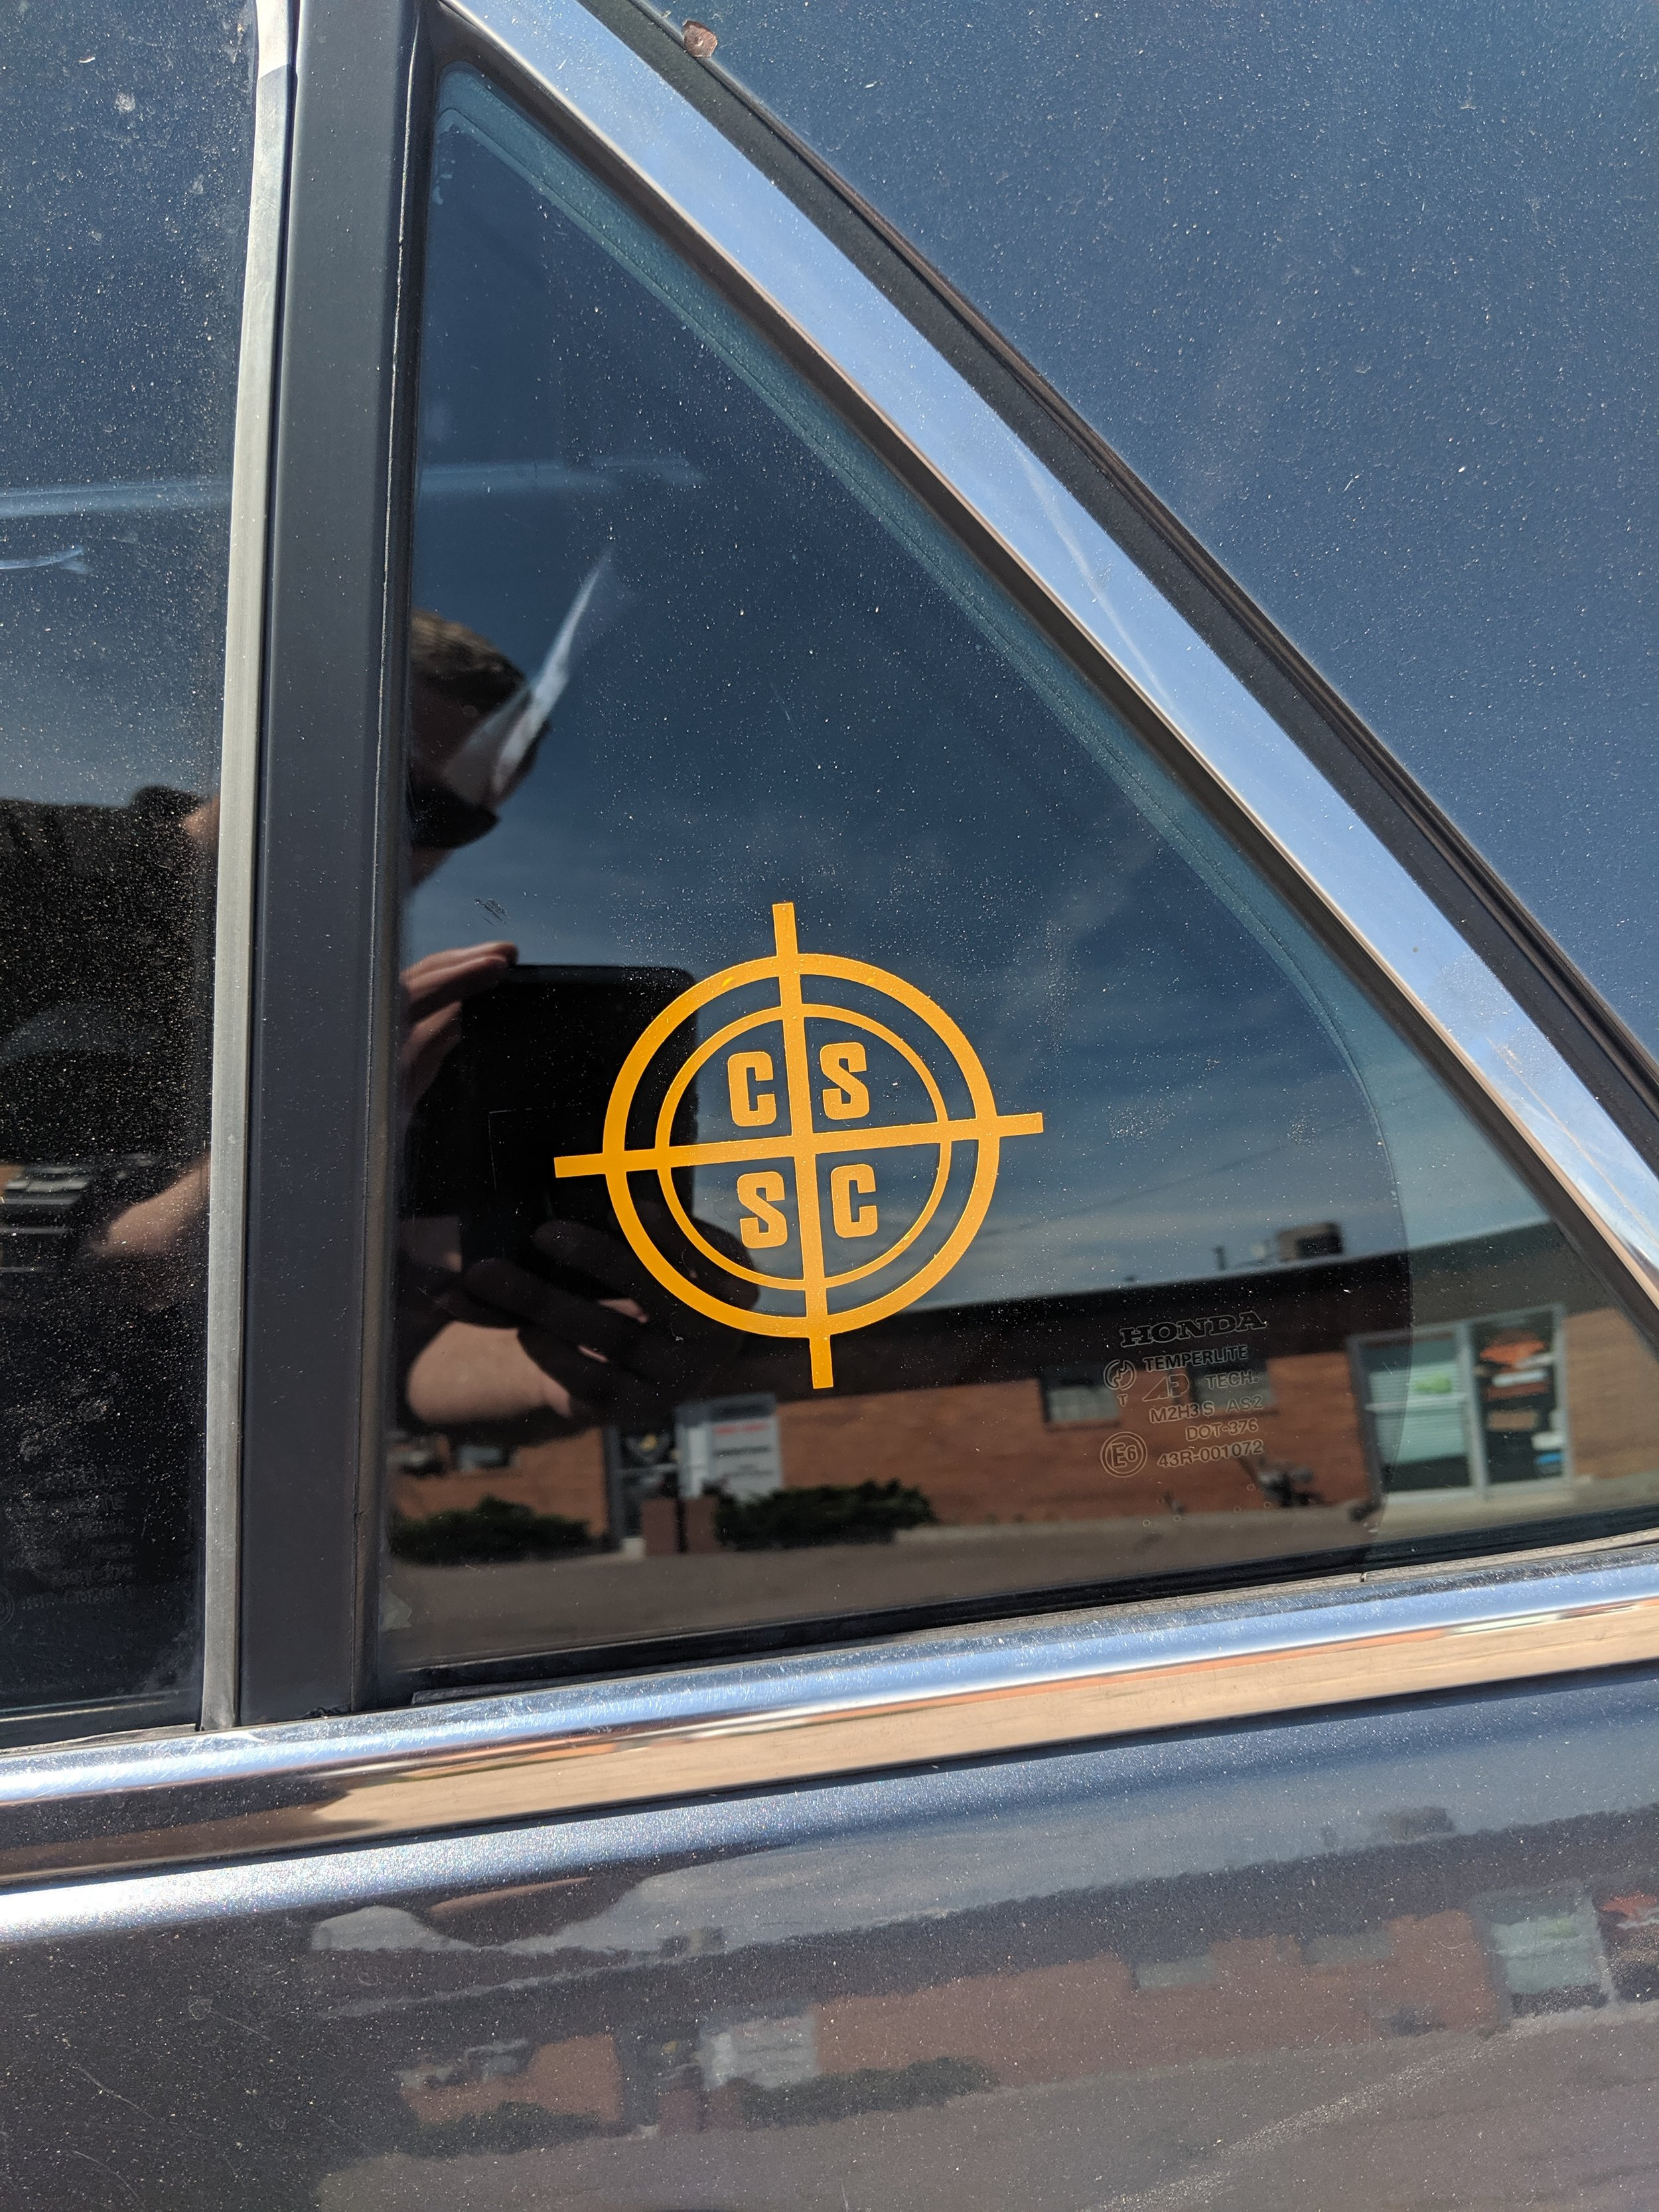 CSSC Crosshairs decal - If we see you with a CSSC decal, we will give you $10 tacticash (or just say $10? - and well give you the $10 tacticash) -